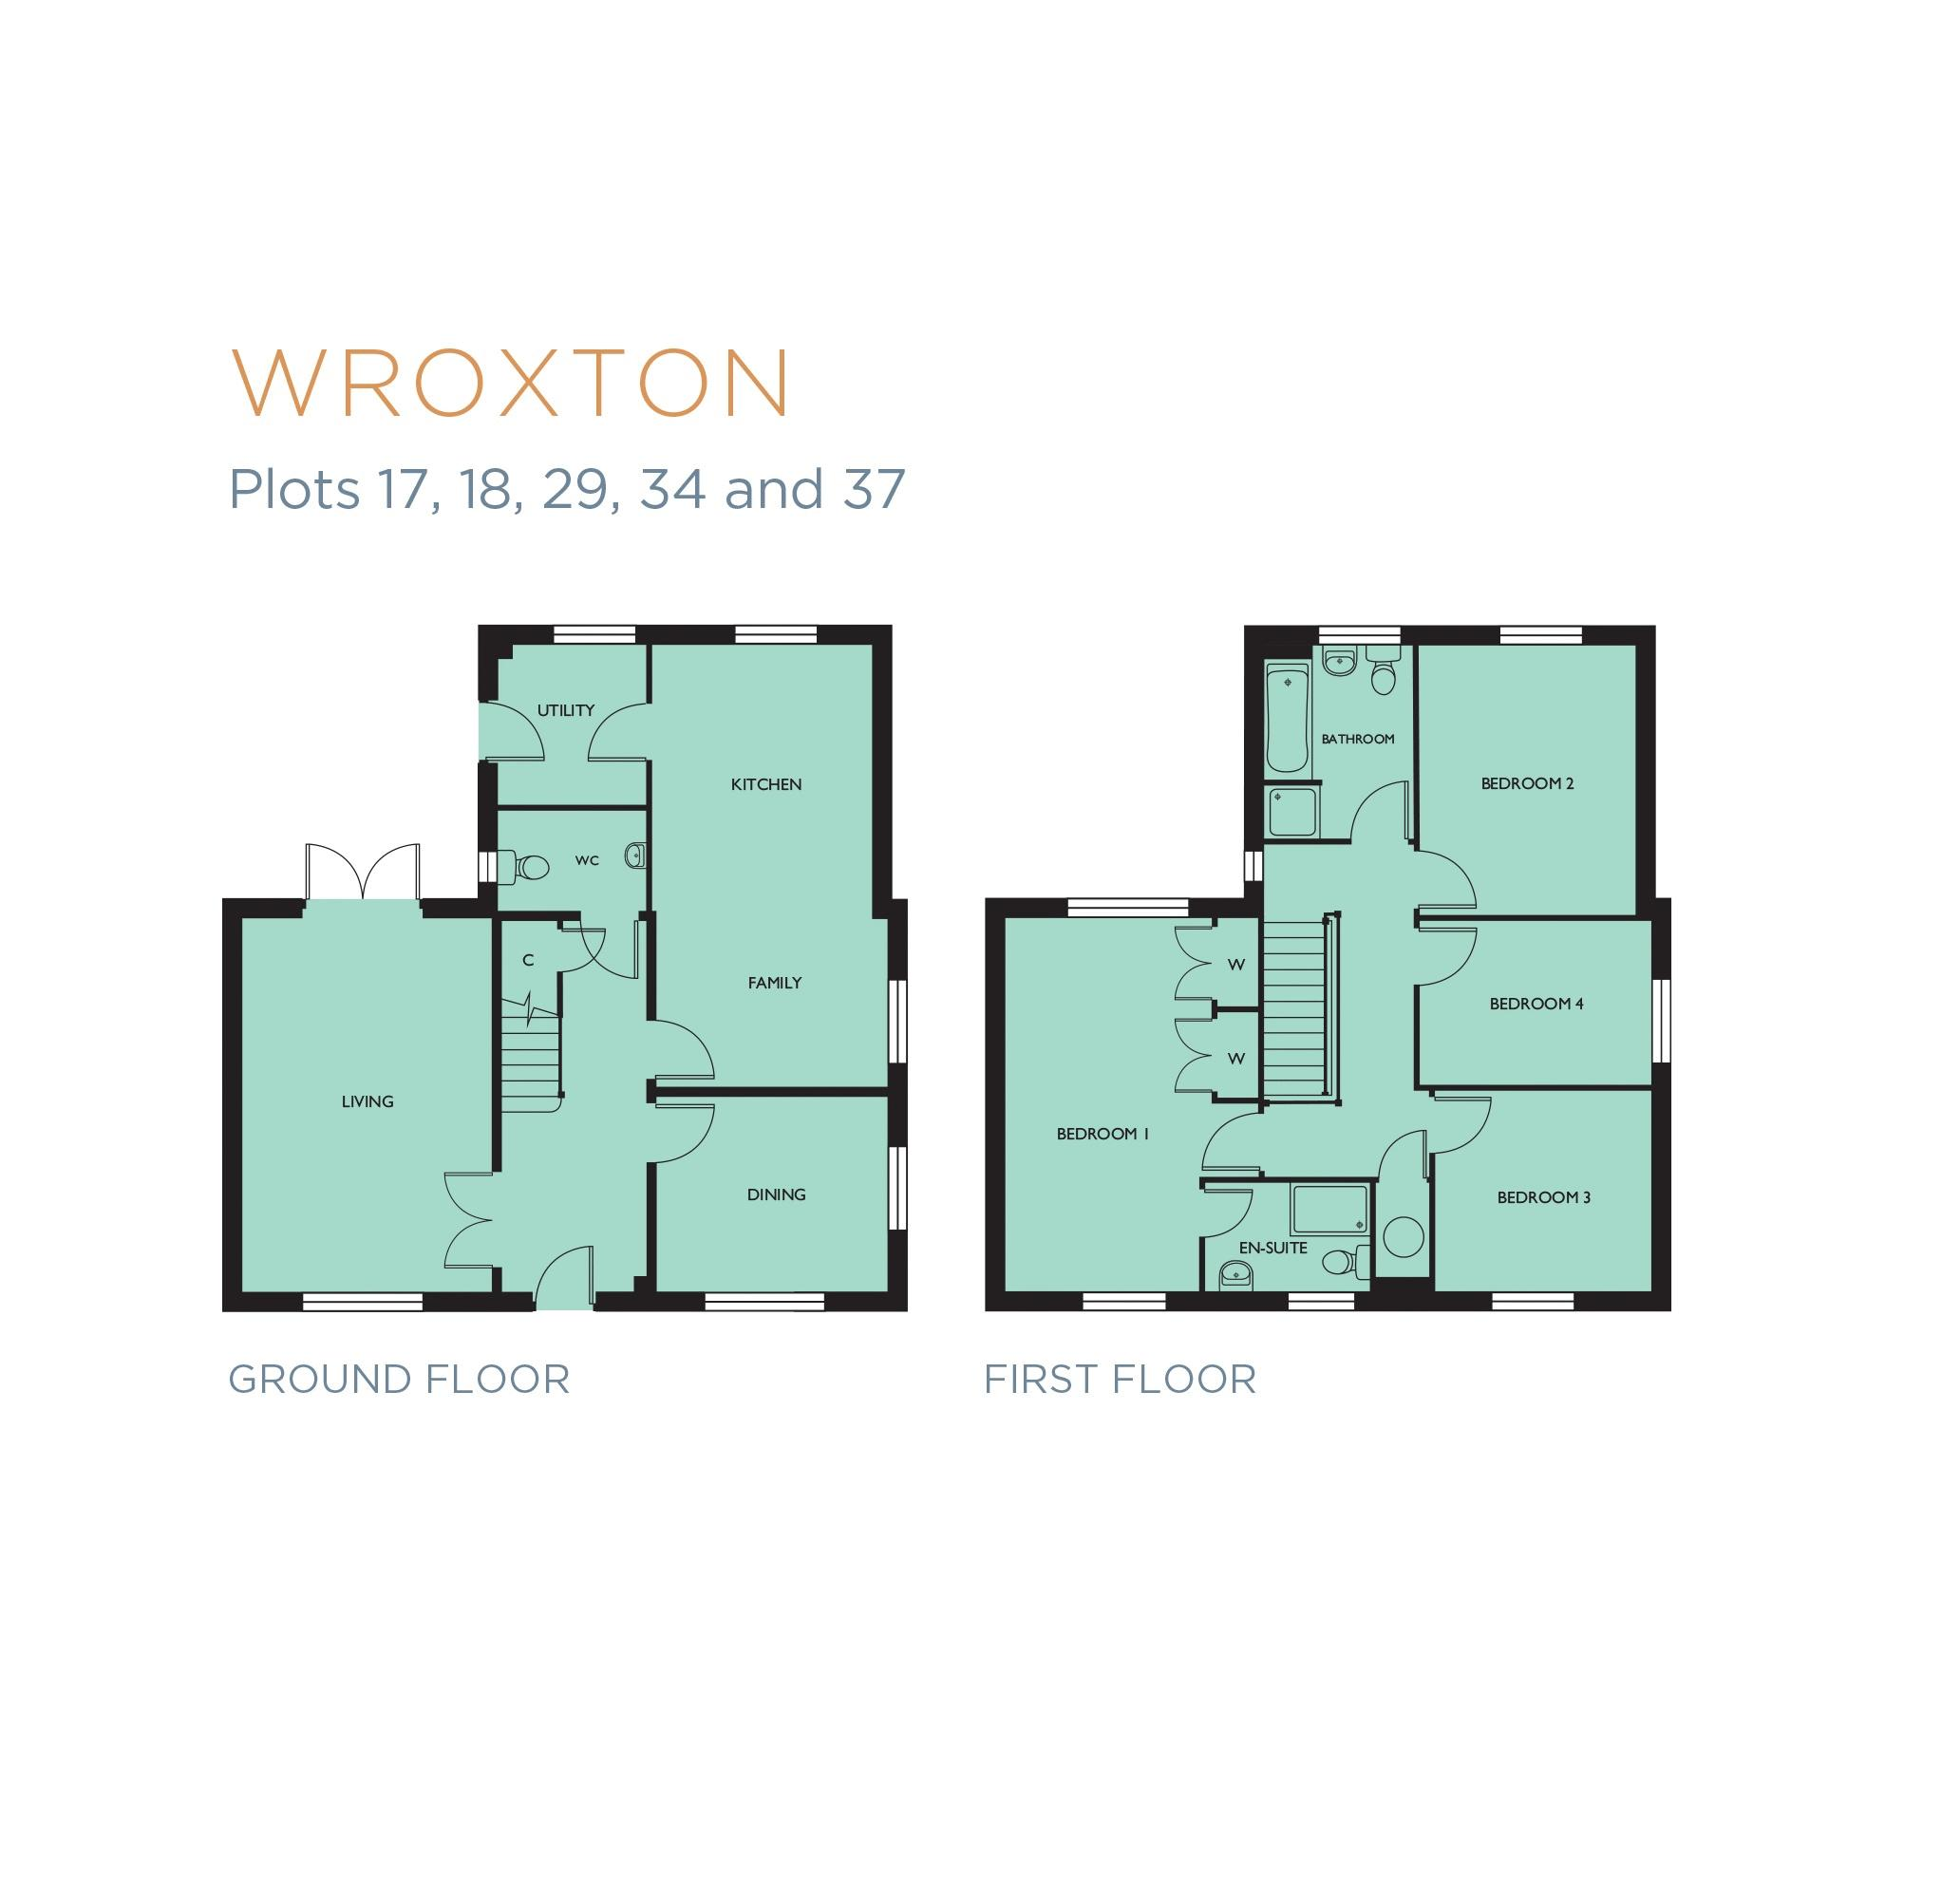 Wroxton Floorplan